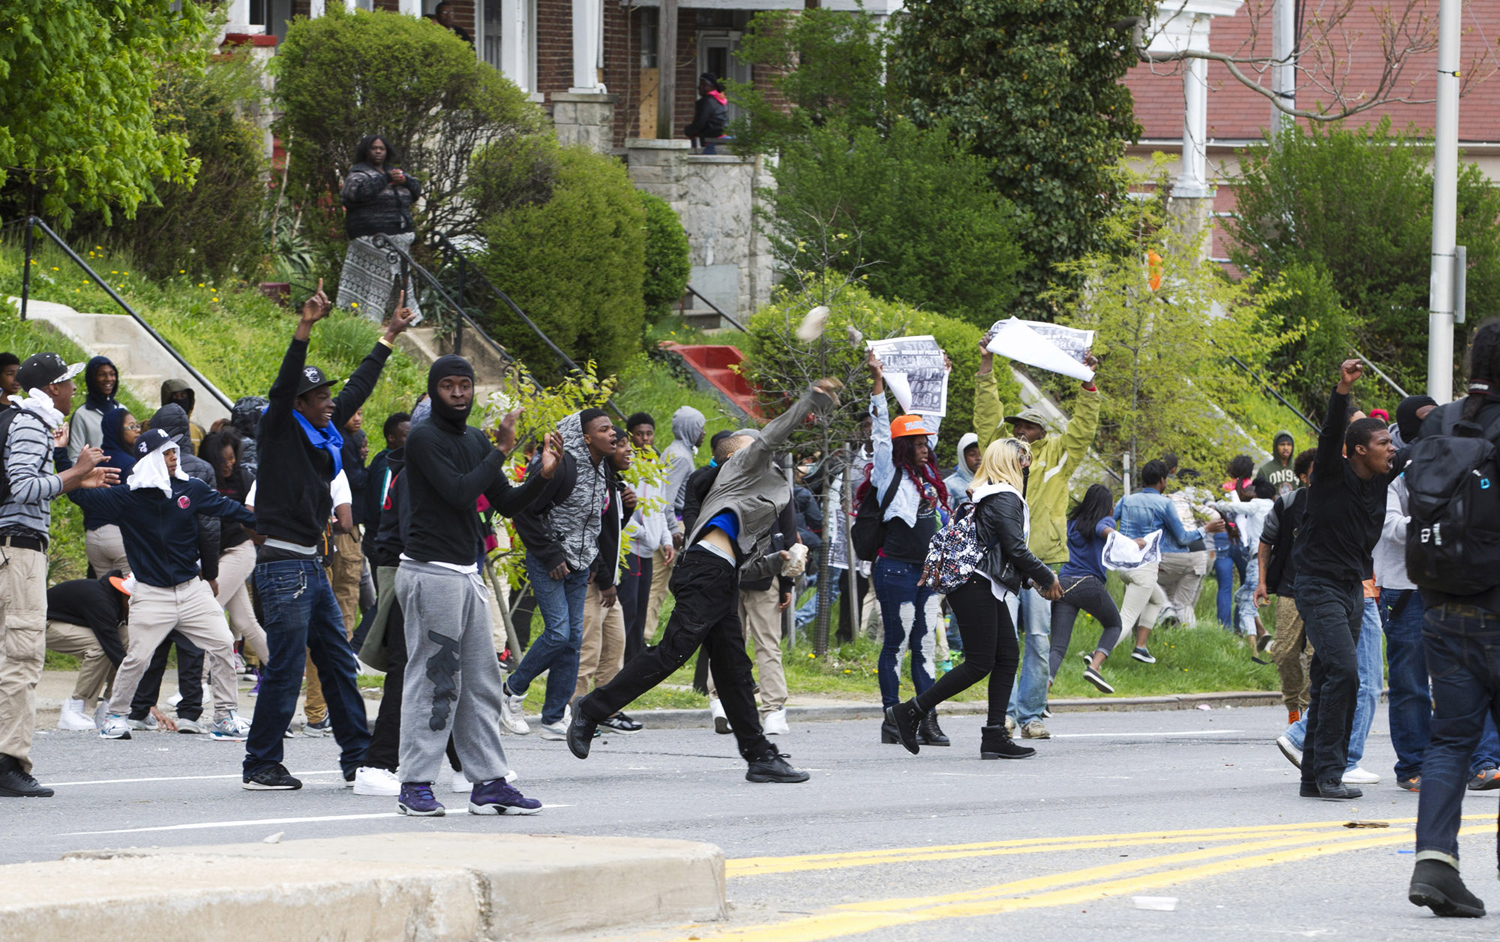 Baltimore police officers in riot gear push protestors back along - Baltimore Police Officers In Riot Gear Push Protestors Back Along 3